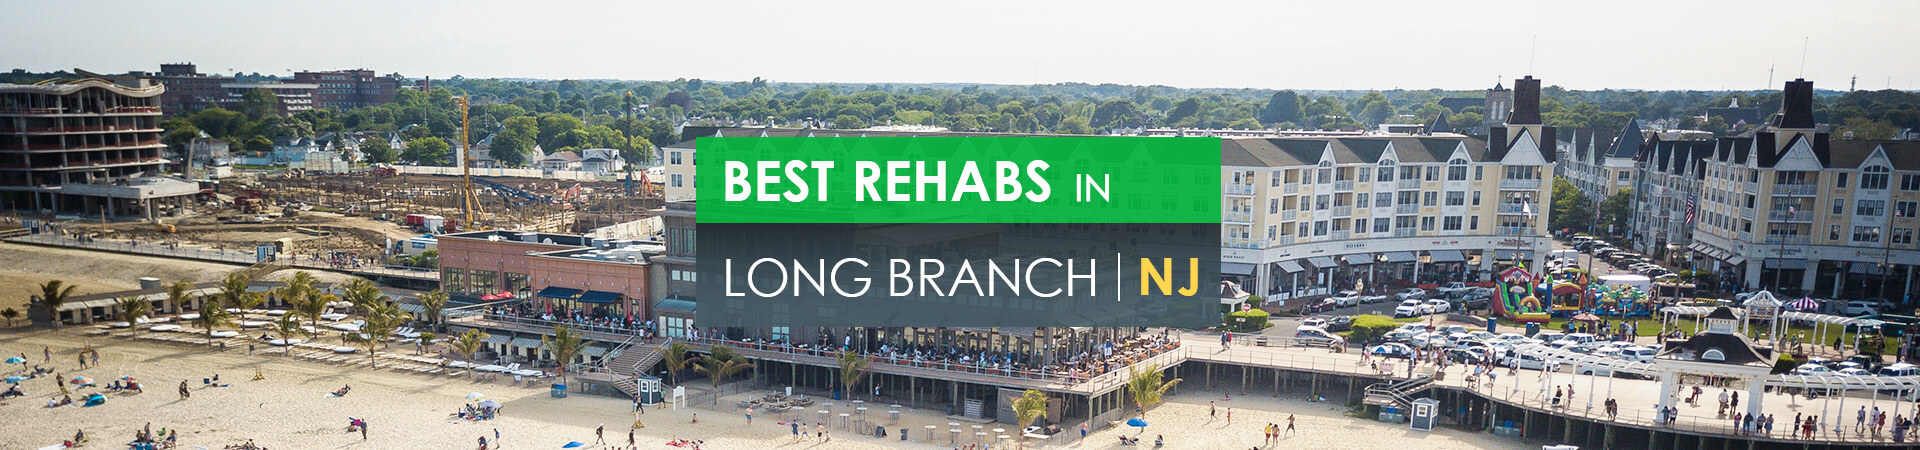 Best rehabs in Long Branch, NJ